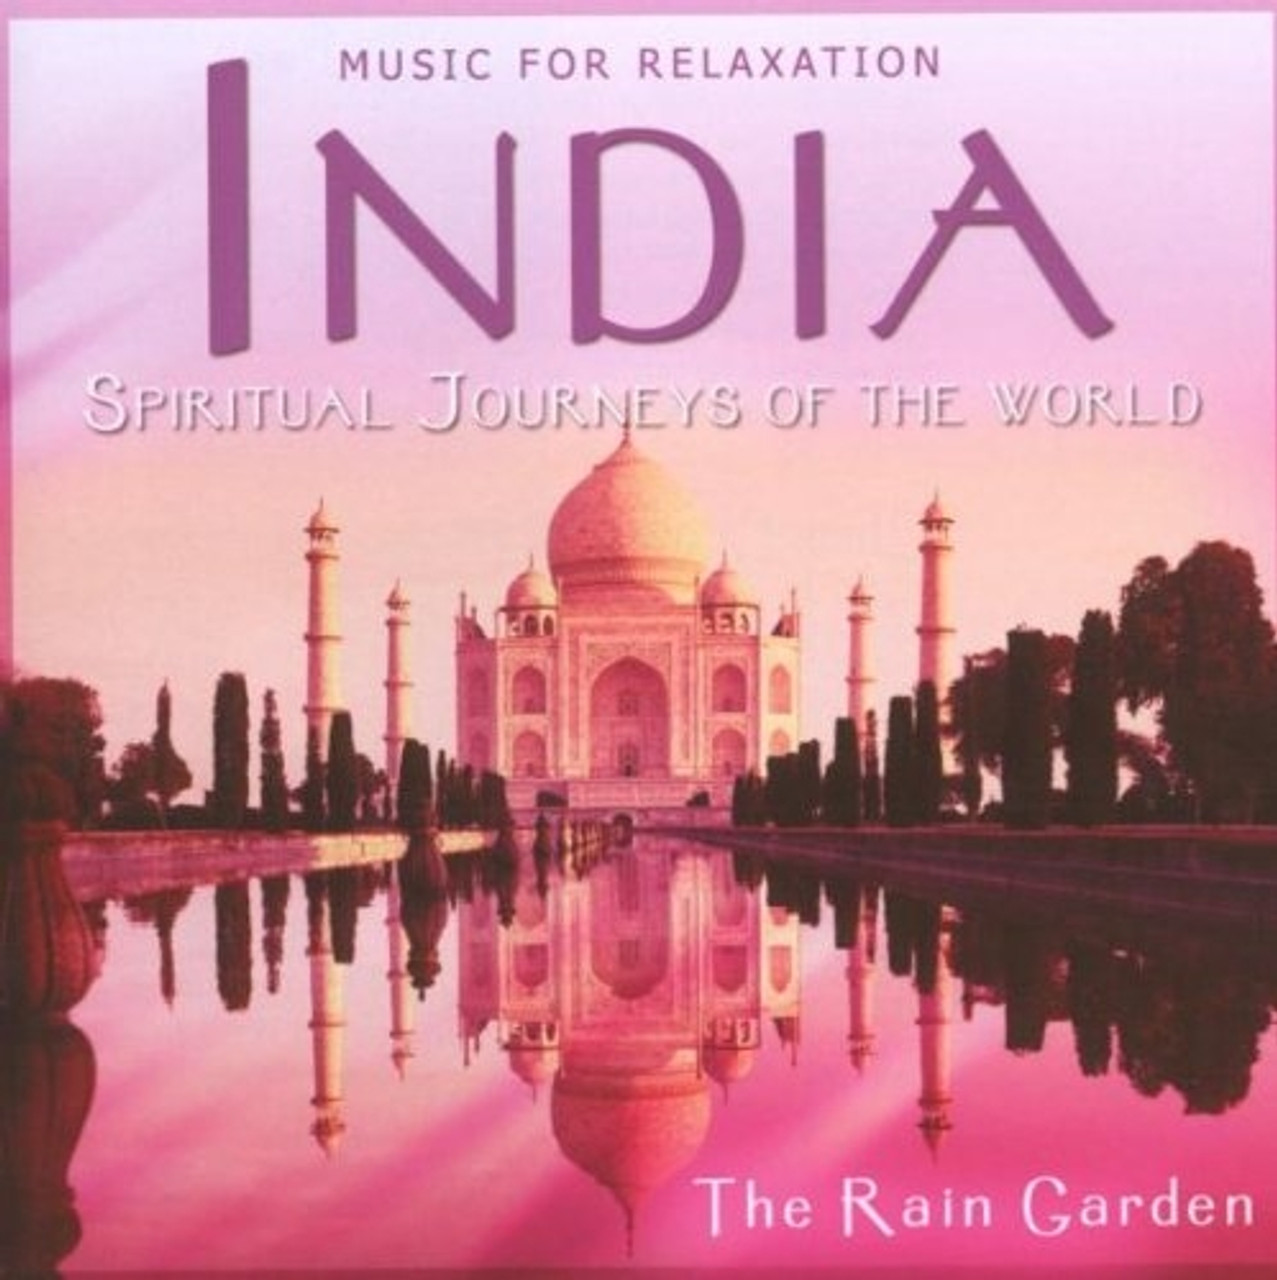 Spiritual Journeys of the World